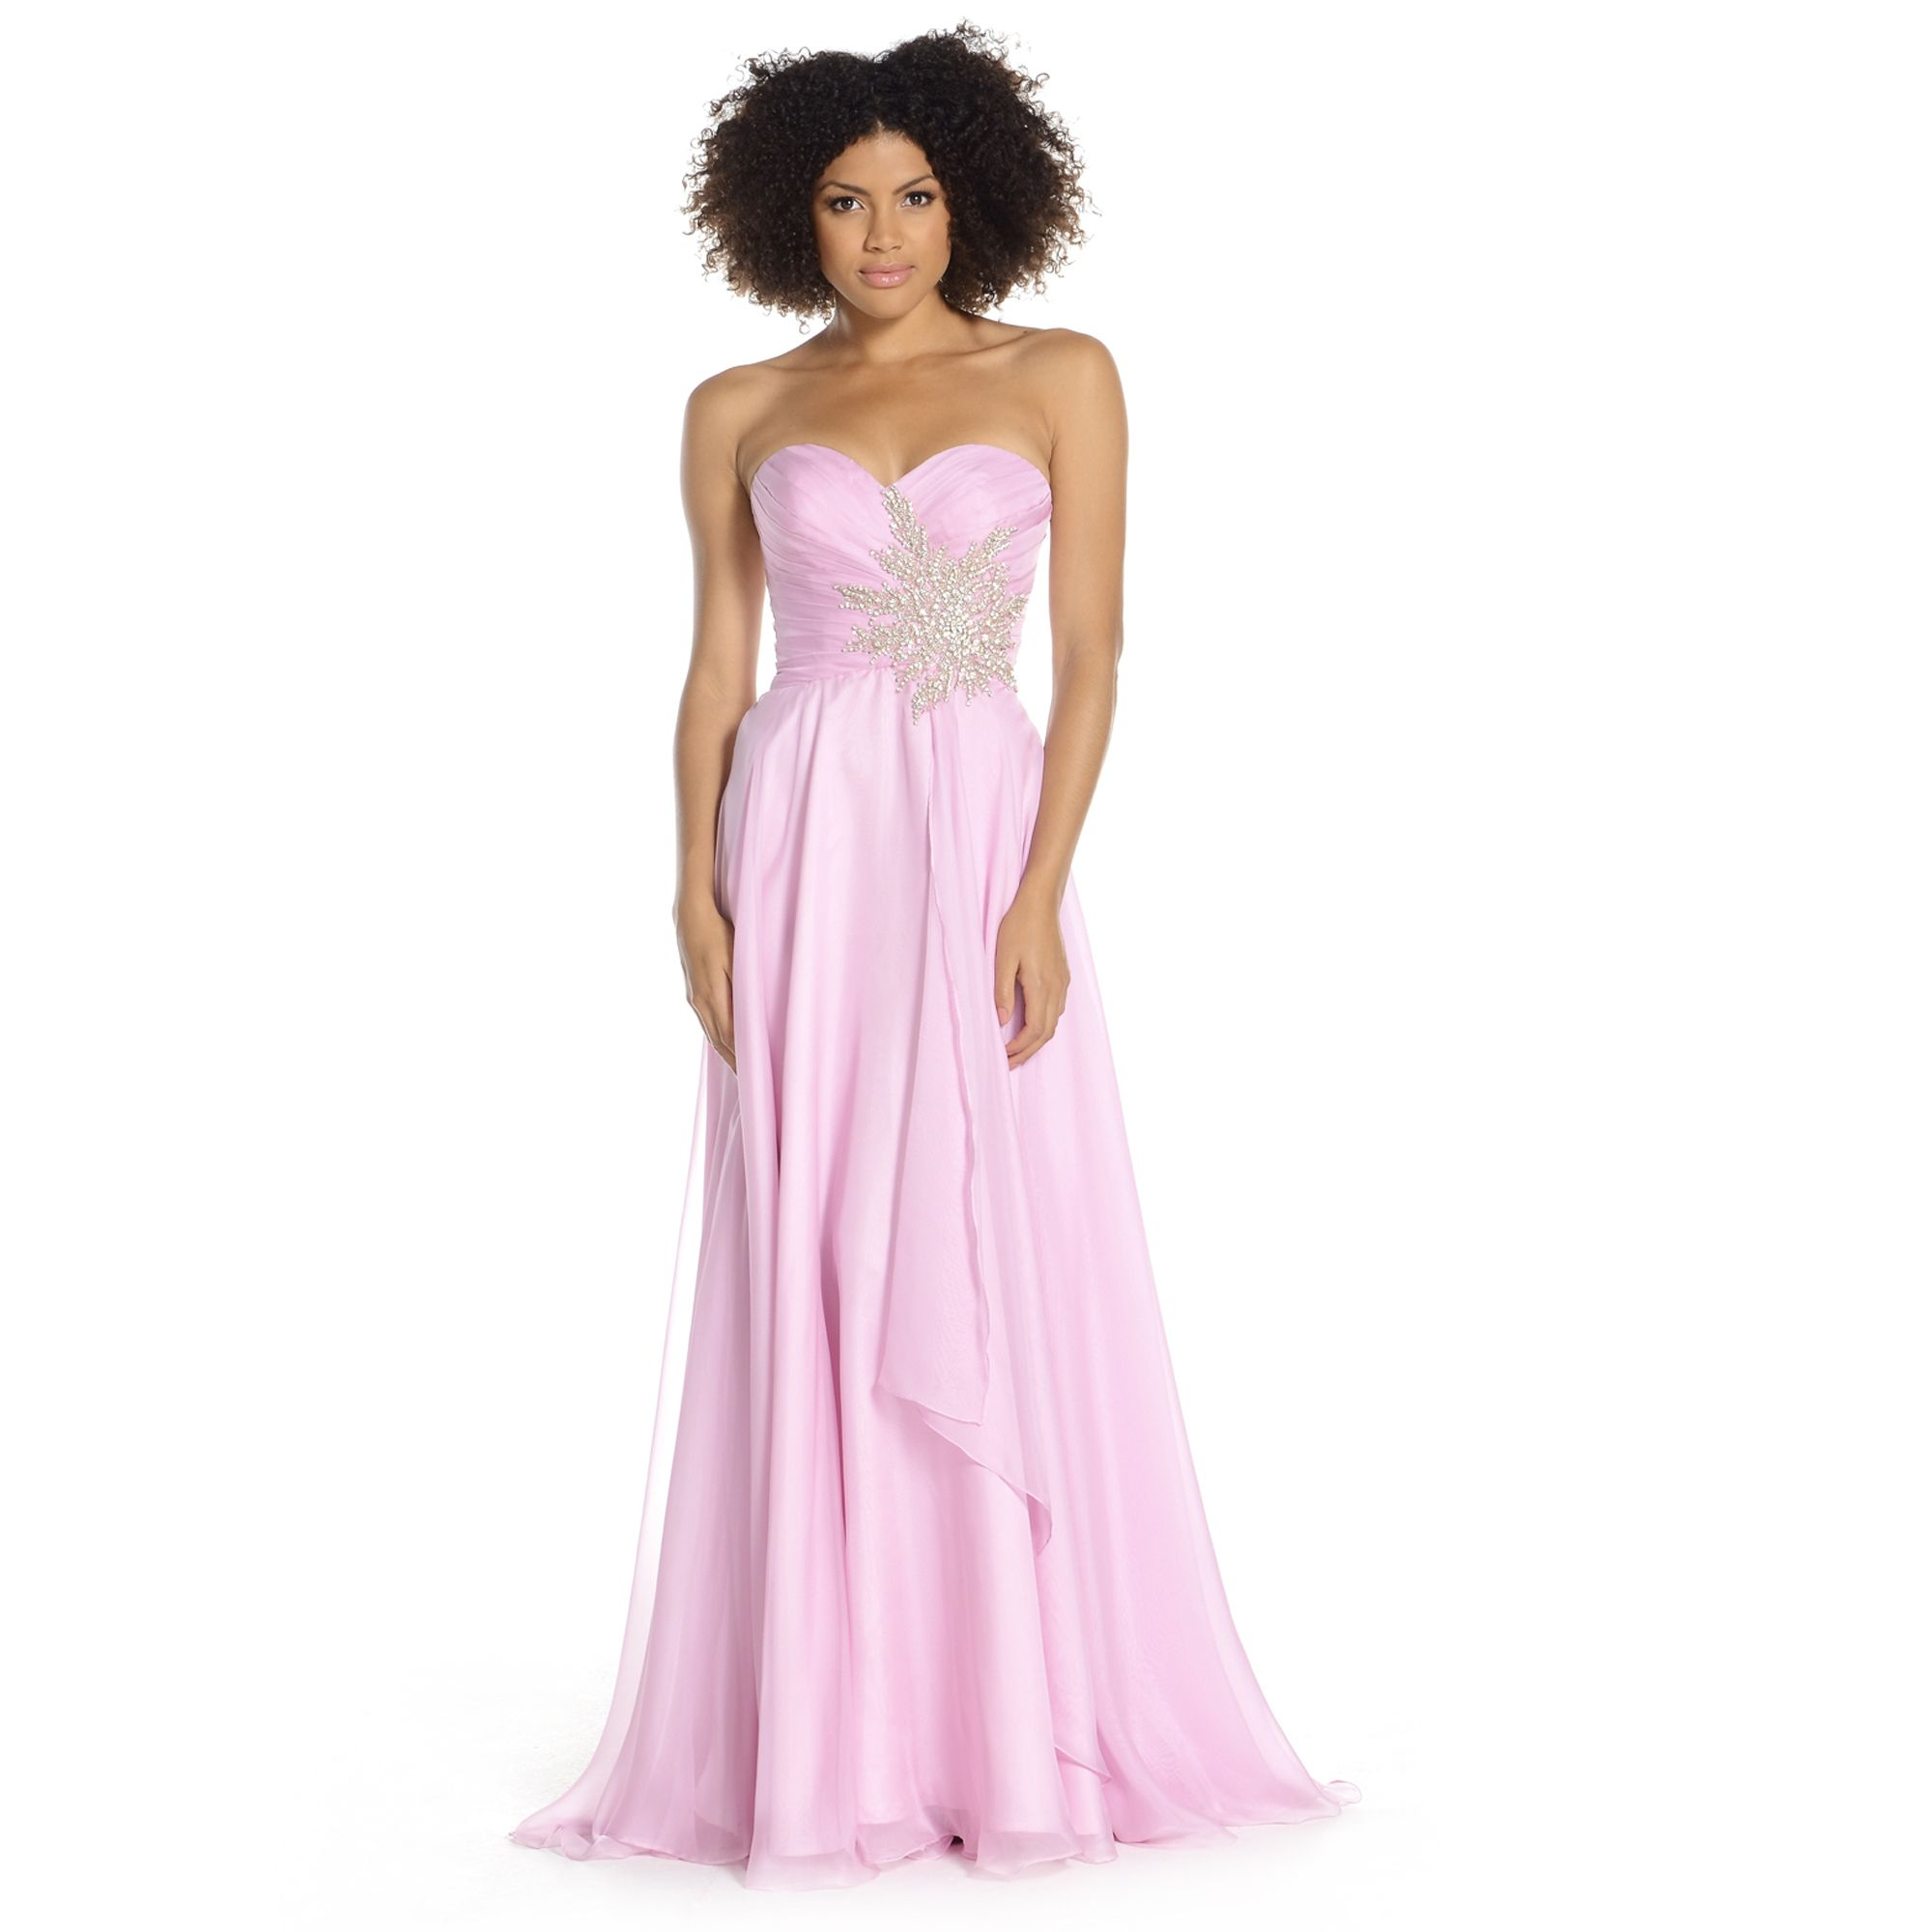 An elegant chiffon gown perfect for prom cruise wear or evening